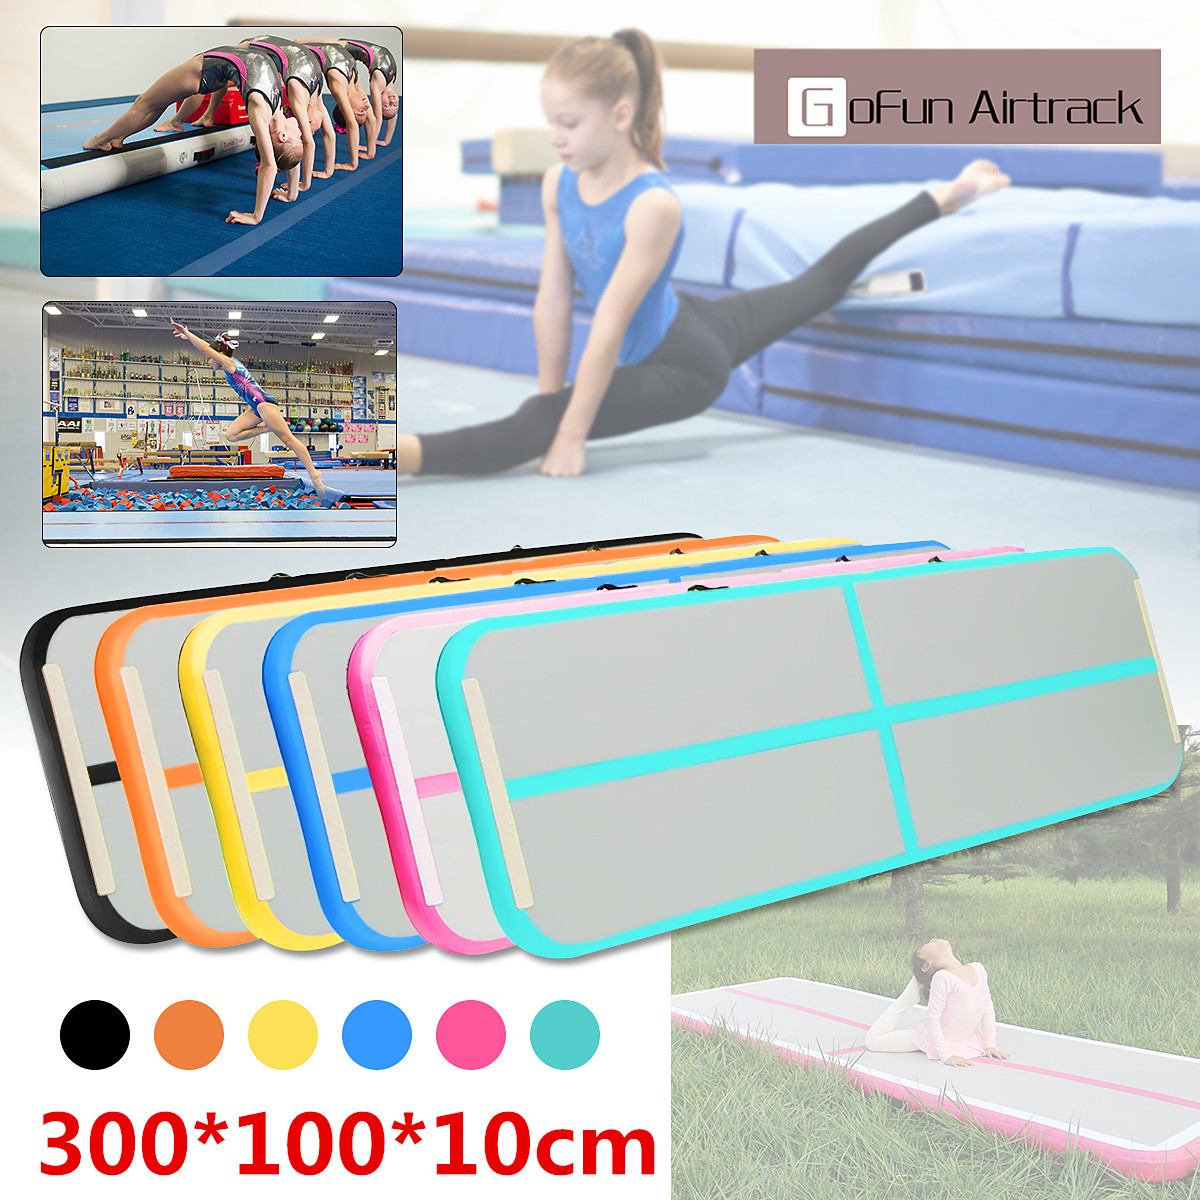 New Arrival Yoga Mats 0.9*3m Inflatable Tumble Track Trampoline Air Track Floor Home GYM Gymnastics Inflatable Air Tumbling Mat free shipping 3x0 9x0 1m black gymnastics inflatable air track gym mat inflatable air tumble track inflatable air track